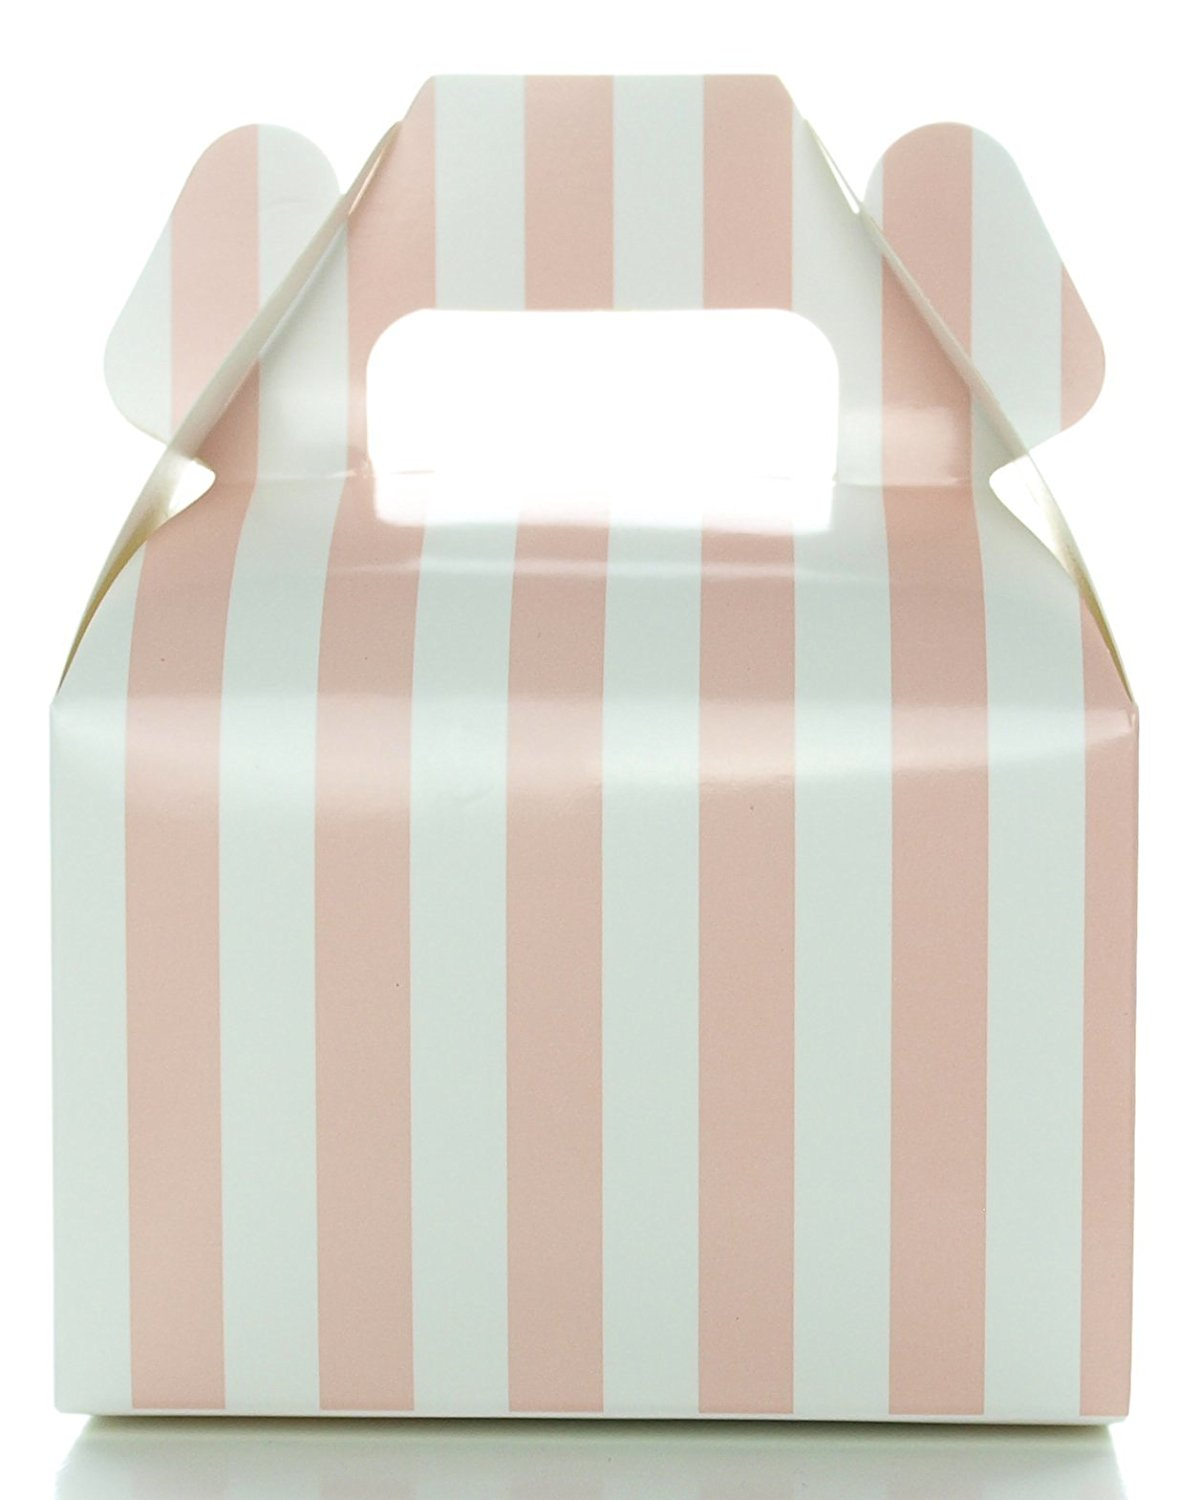 Baby Shower Candy Boxes, Light Pink Striped (12 Pack) - Wedding Supply Favor Box, Girls Princess Birthday Party Supplies, Small Square Gable Boxes